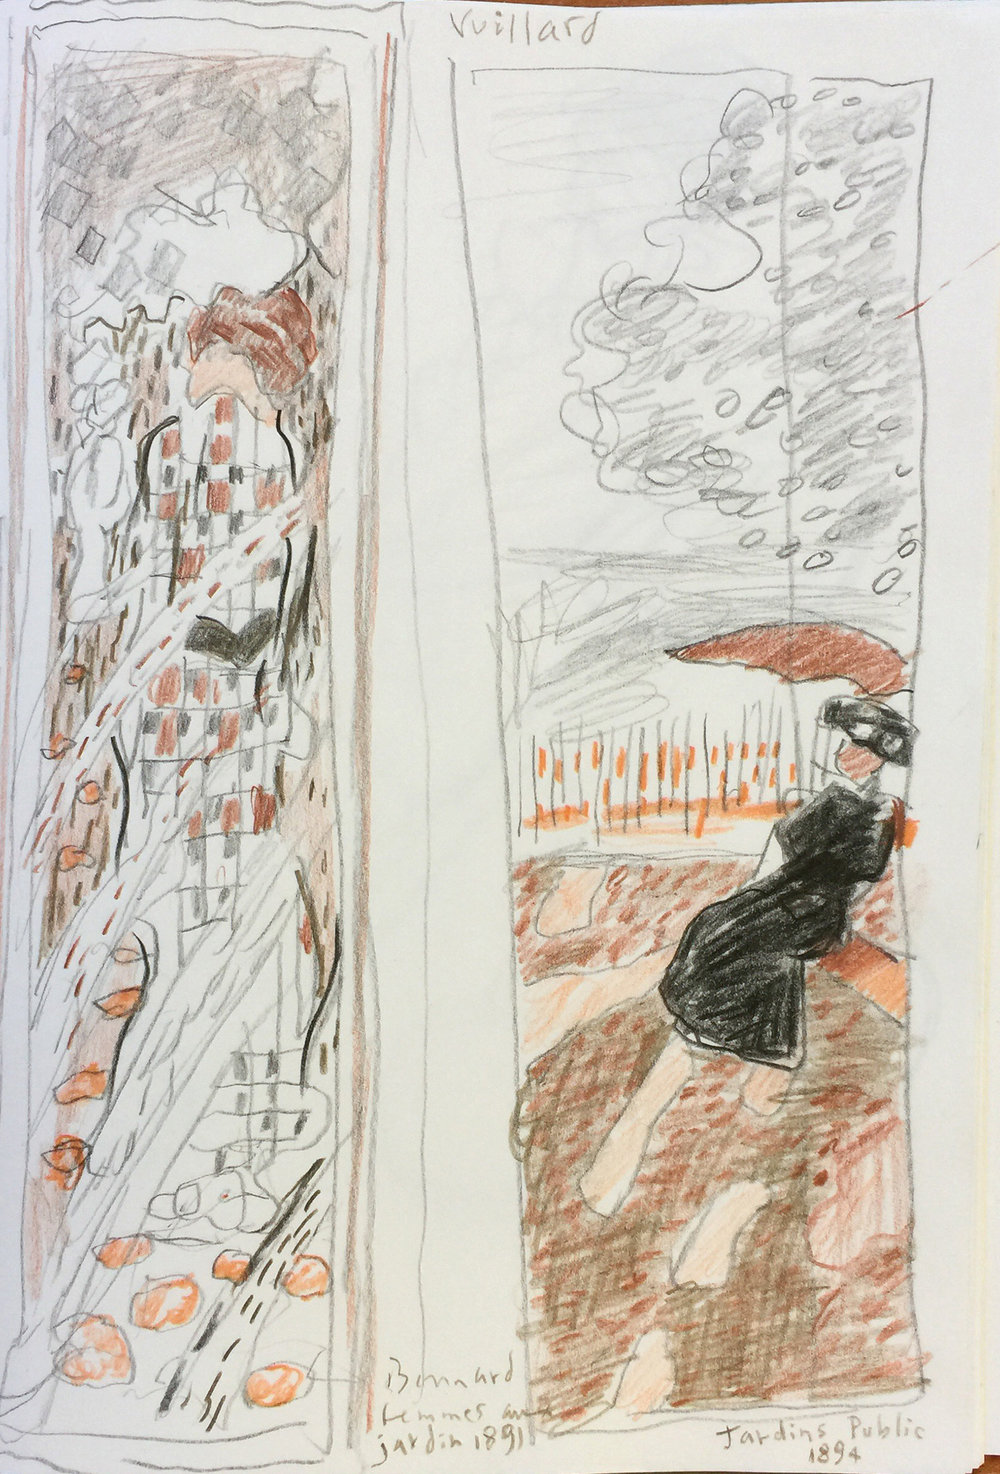 Study of Vuillard & Bonnard screens, Musée d'Orsay, Paris